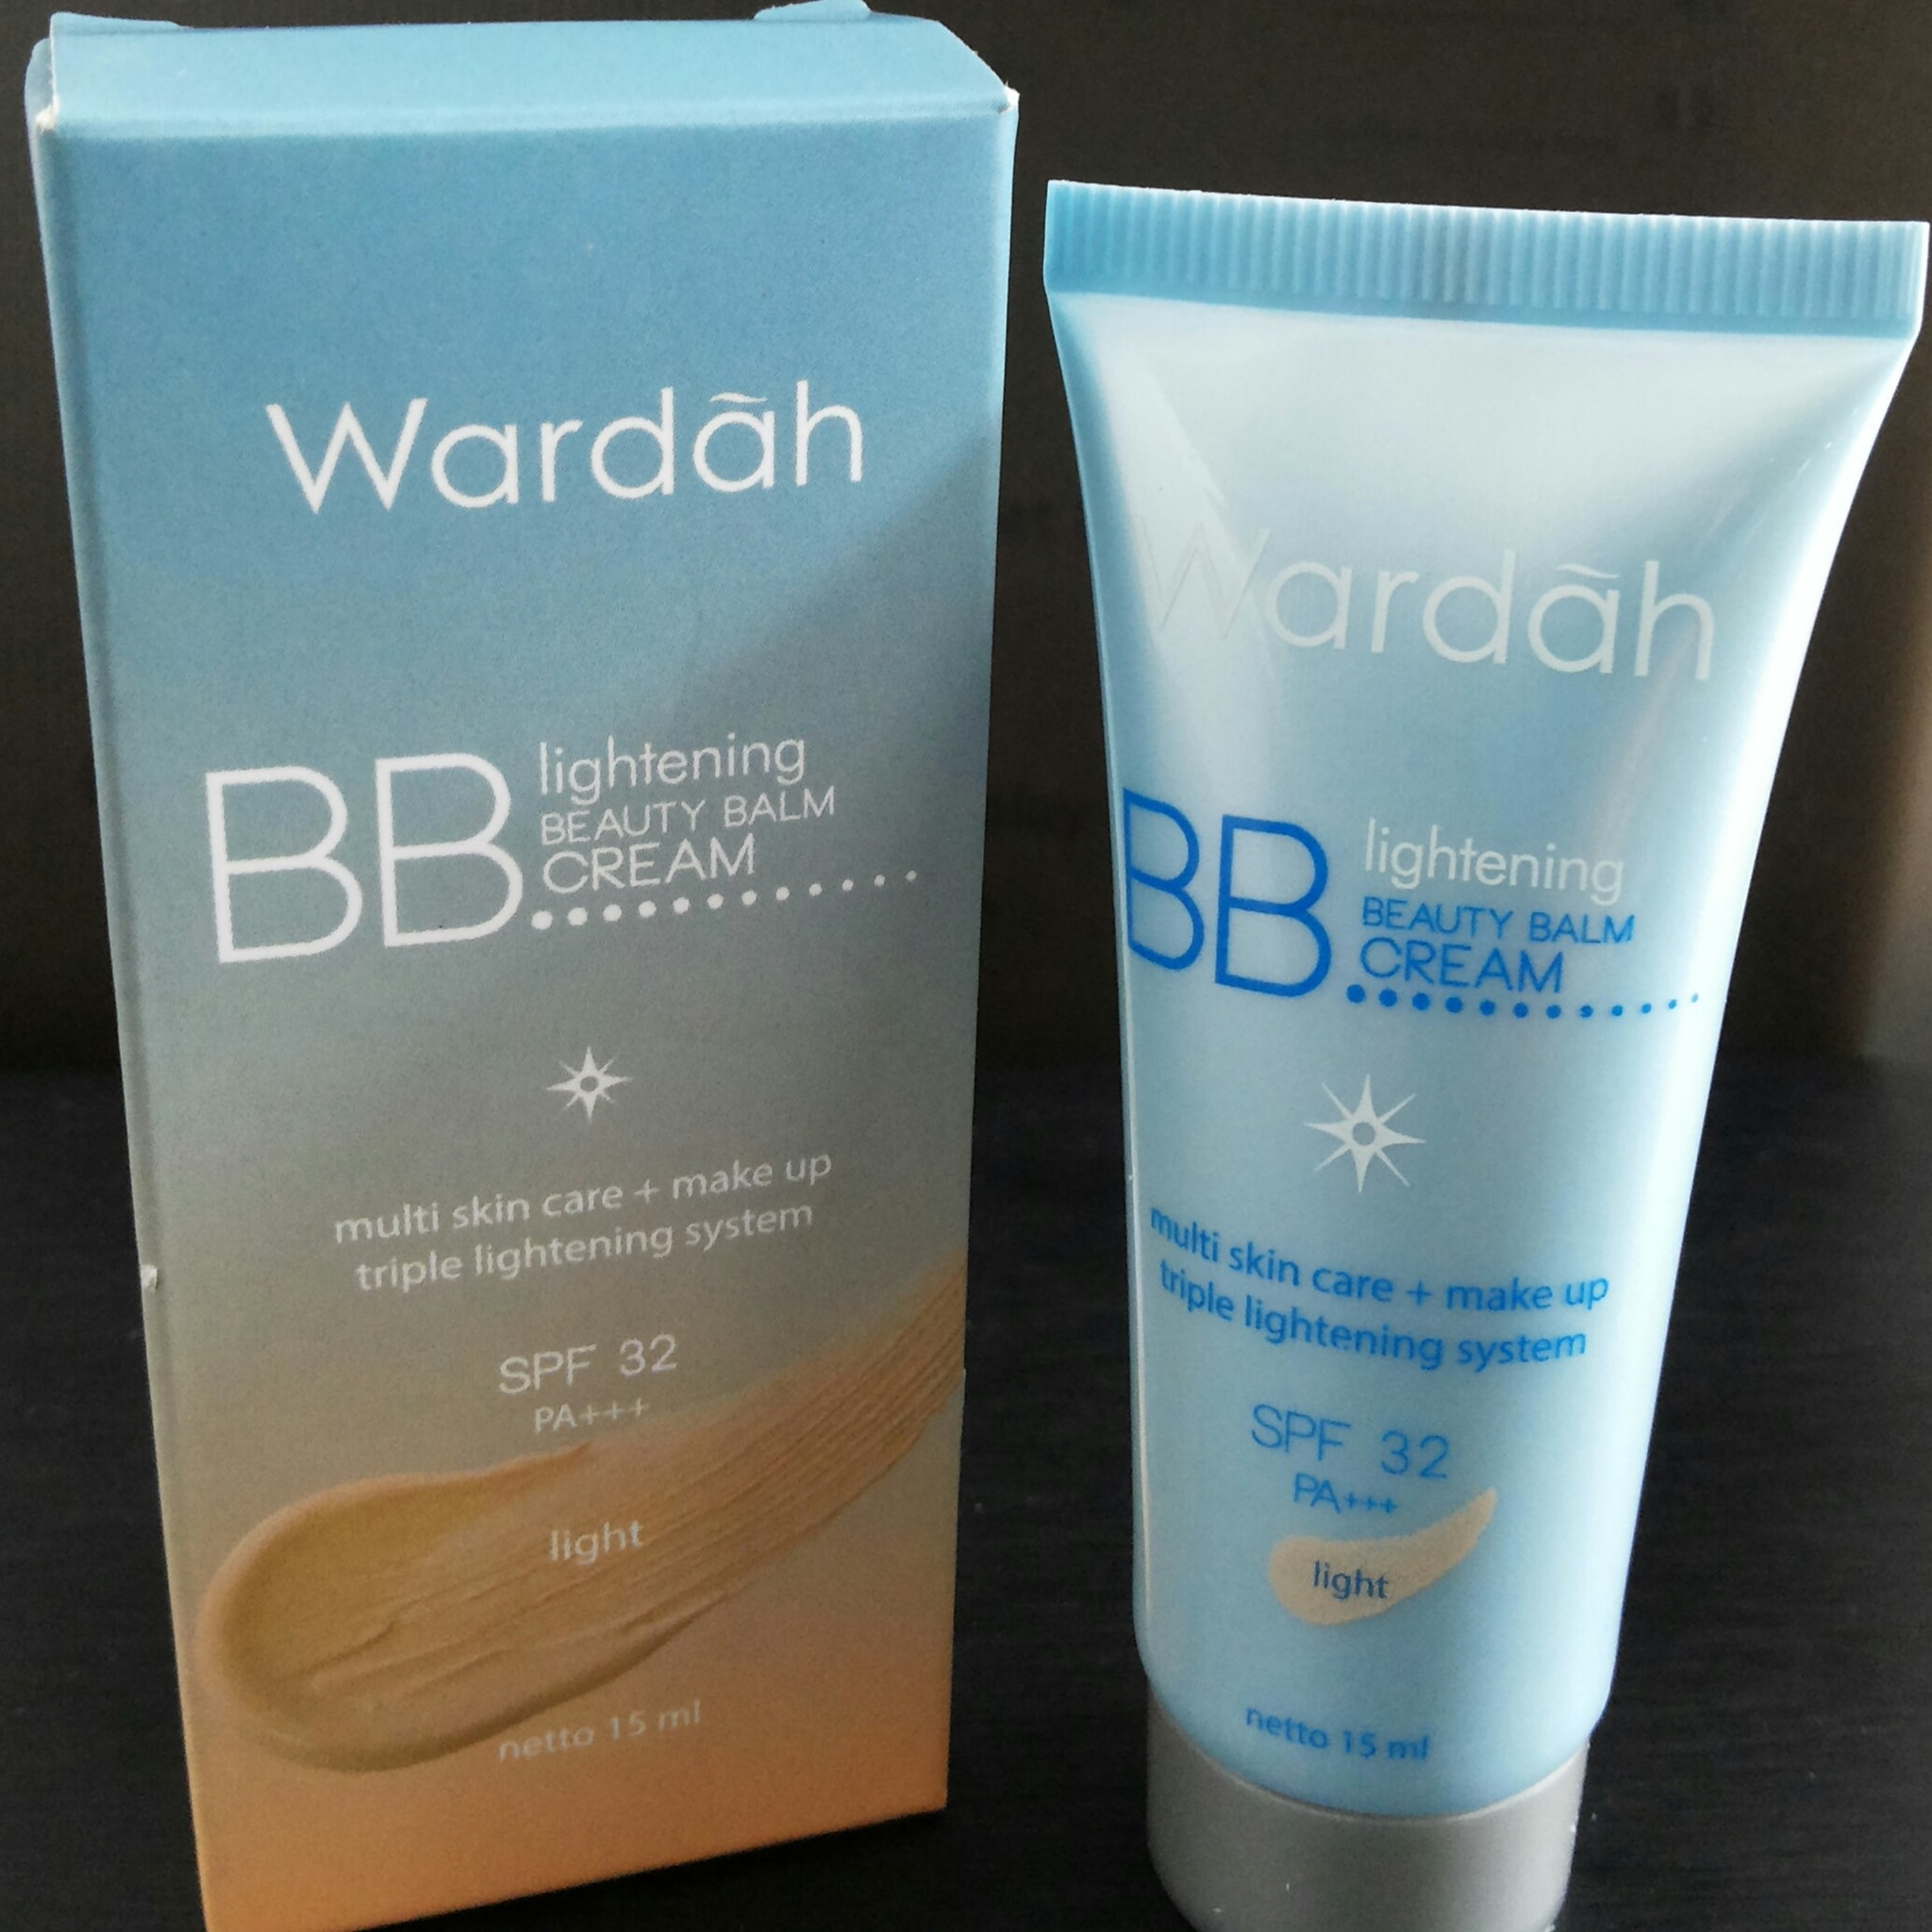 Wardah Paket Bb Cream Lightening Spf 32 Natural 30ml Gratis Spons Jual Ukuran 30 Ml